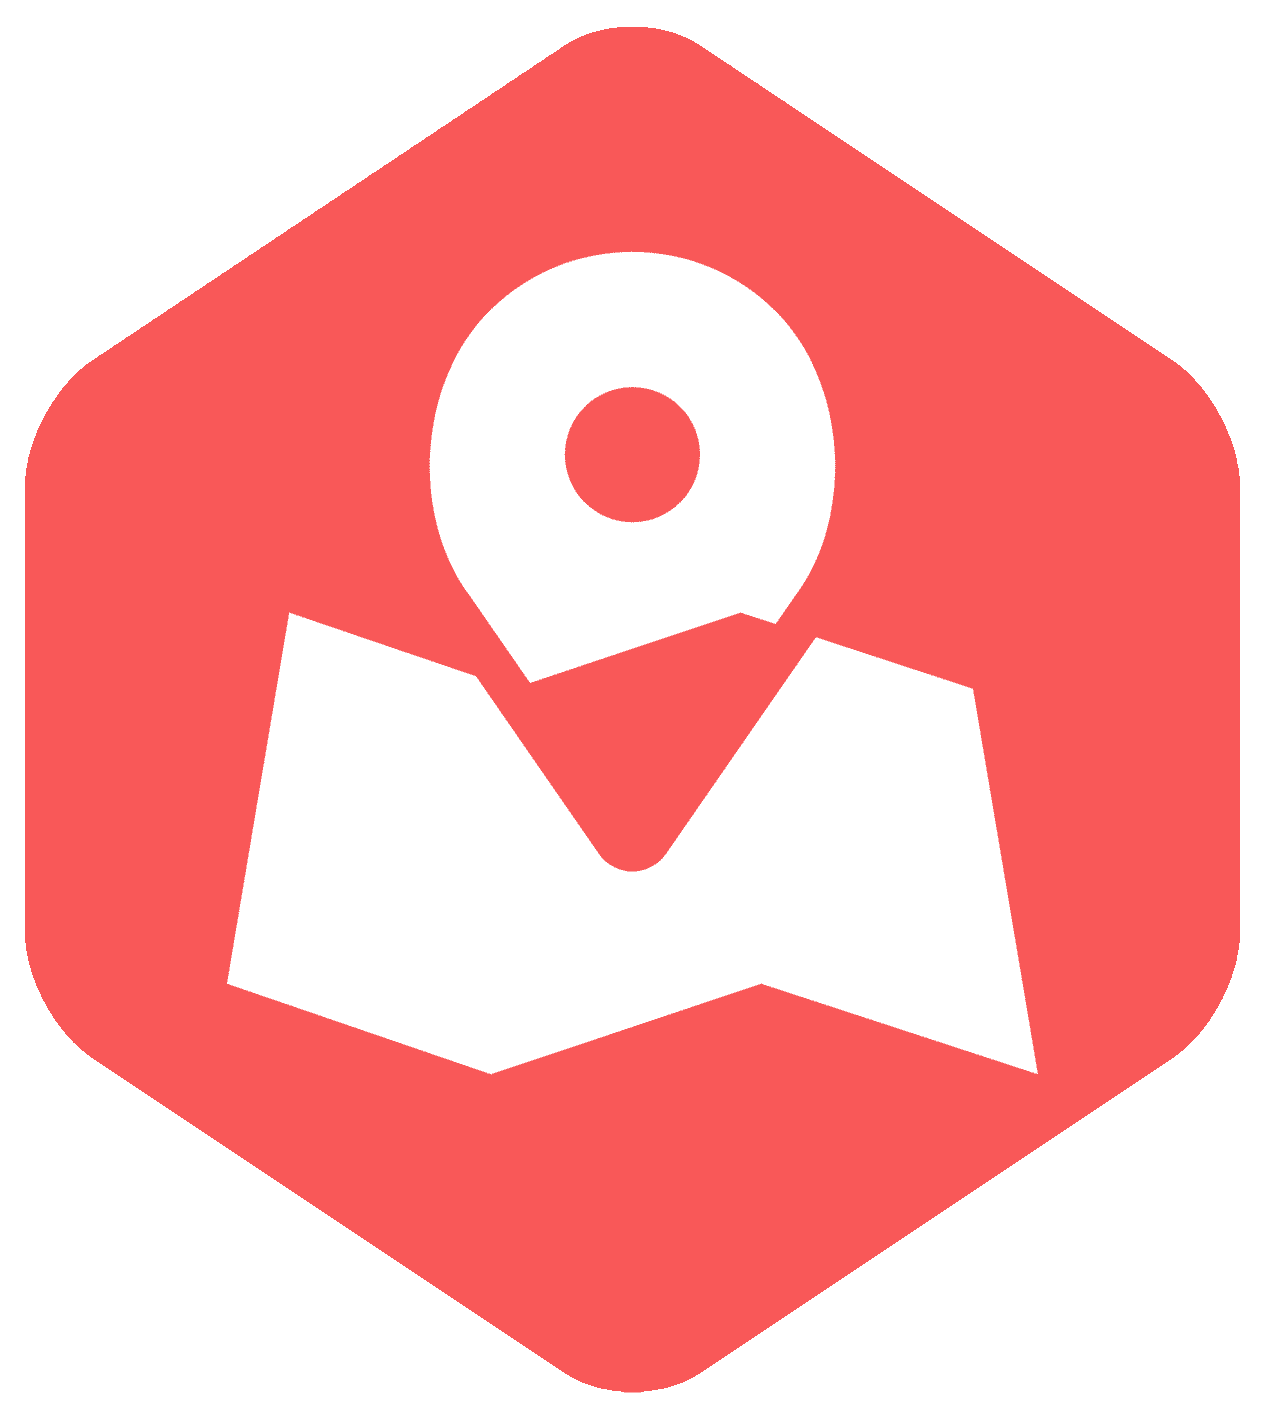 Meetup Participant: Attended one of our Meetups around the world